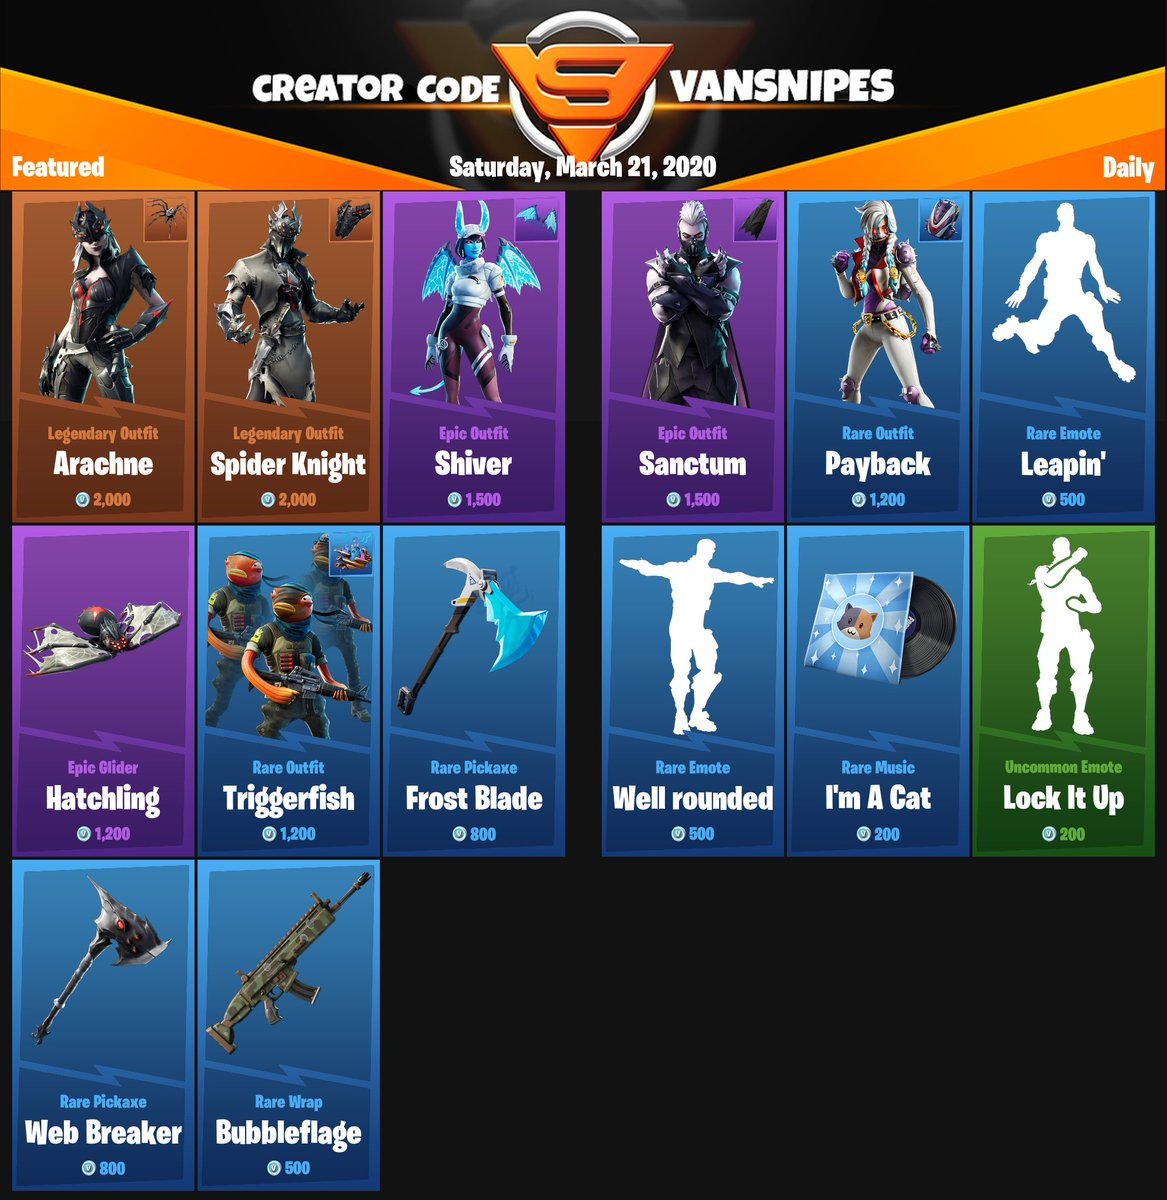 Fortnite Daily Shop 21.03.2020 #epicpartner #fortnite #itemshop #dailyshop #fortniteshop #vansnipes #snipesfamily #items #dailypic.twitter.com/ANQtr2xItl